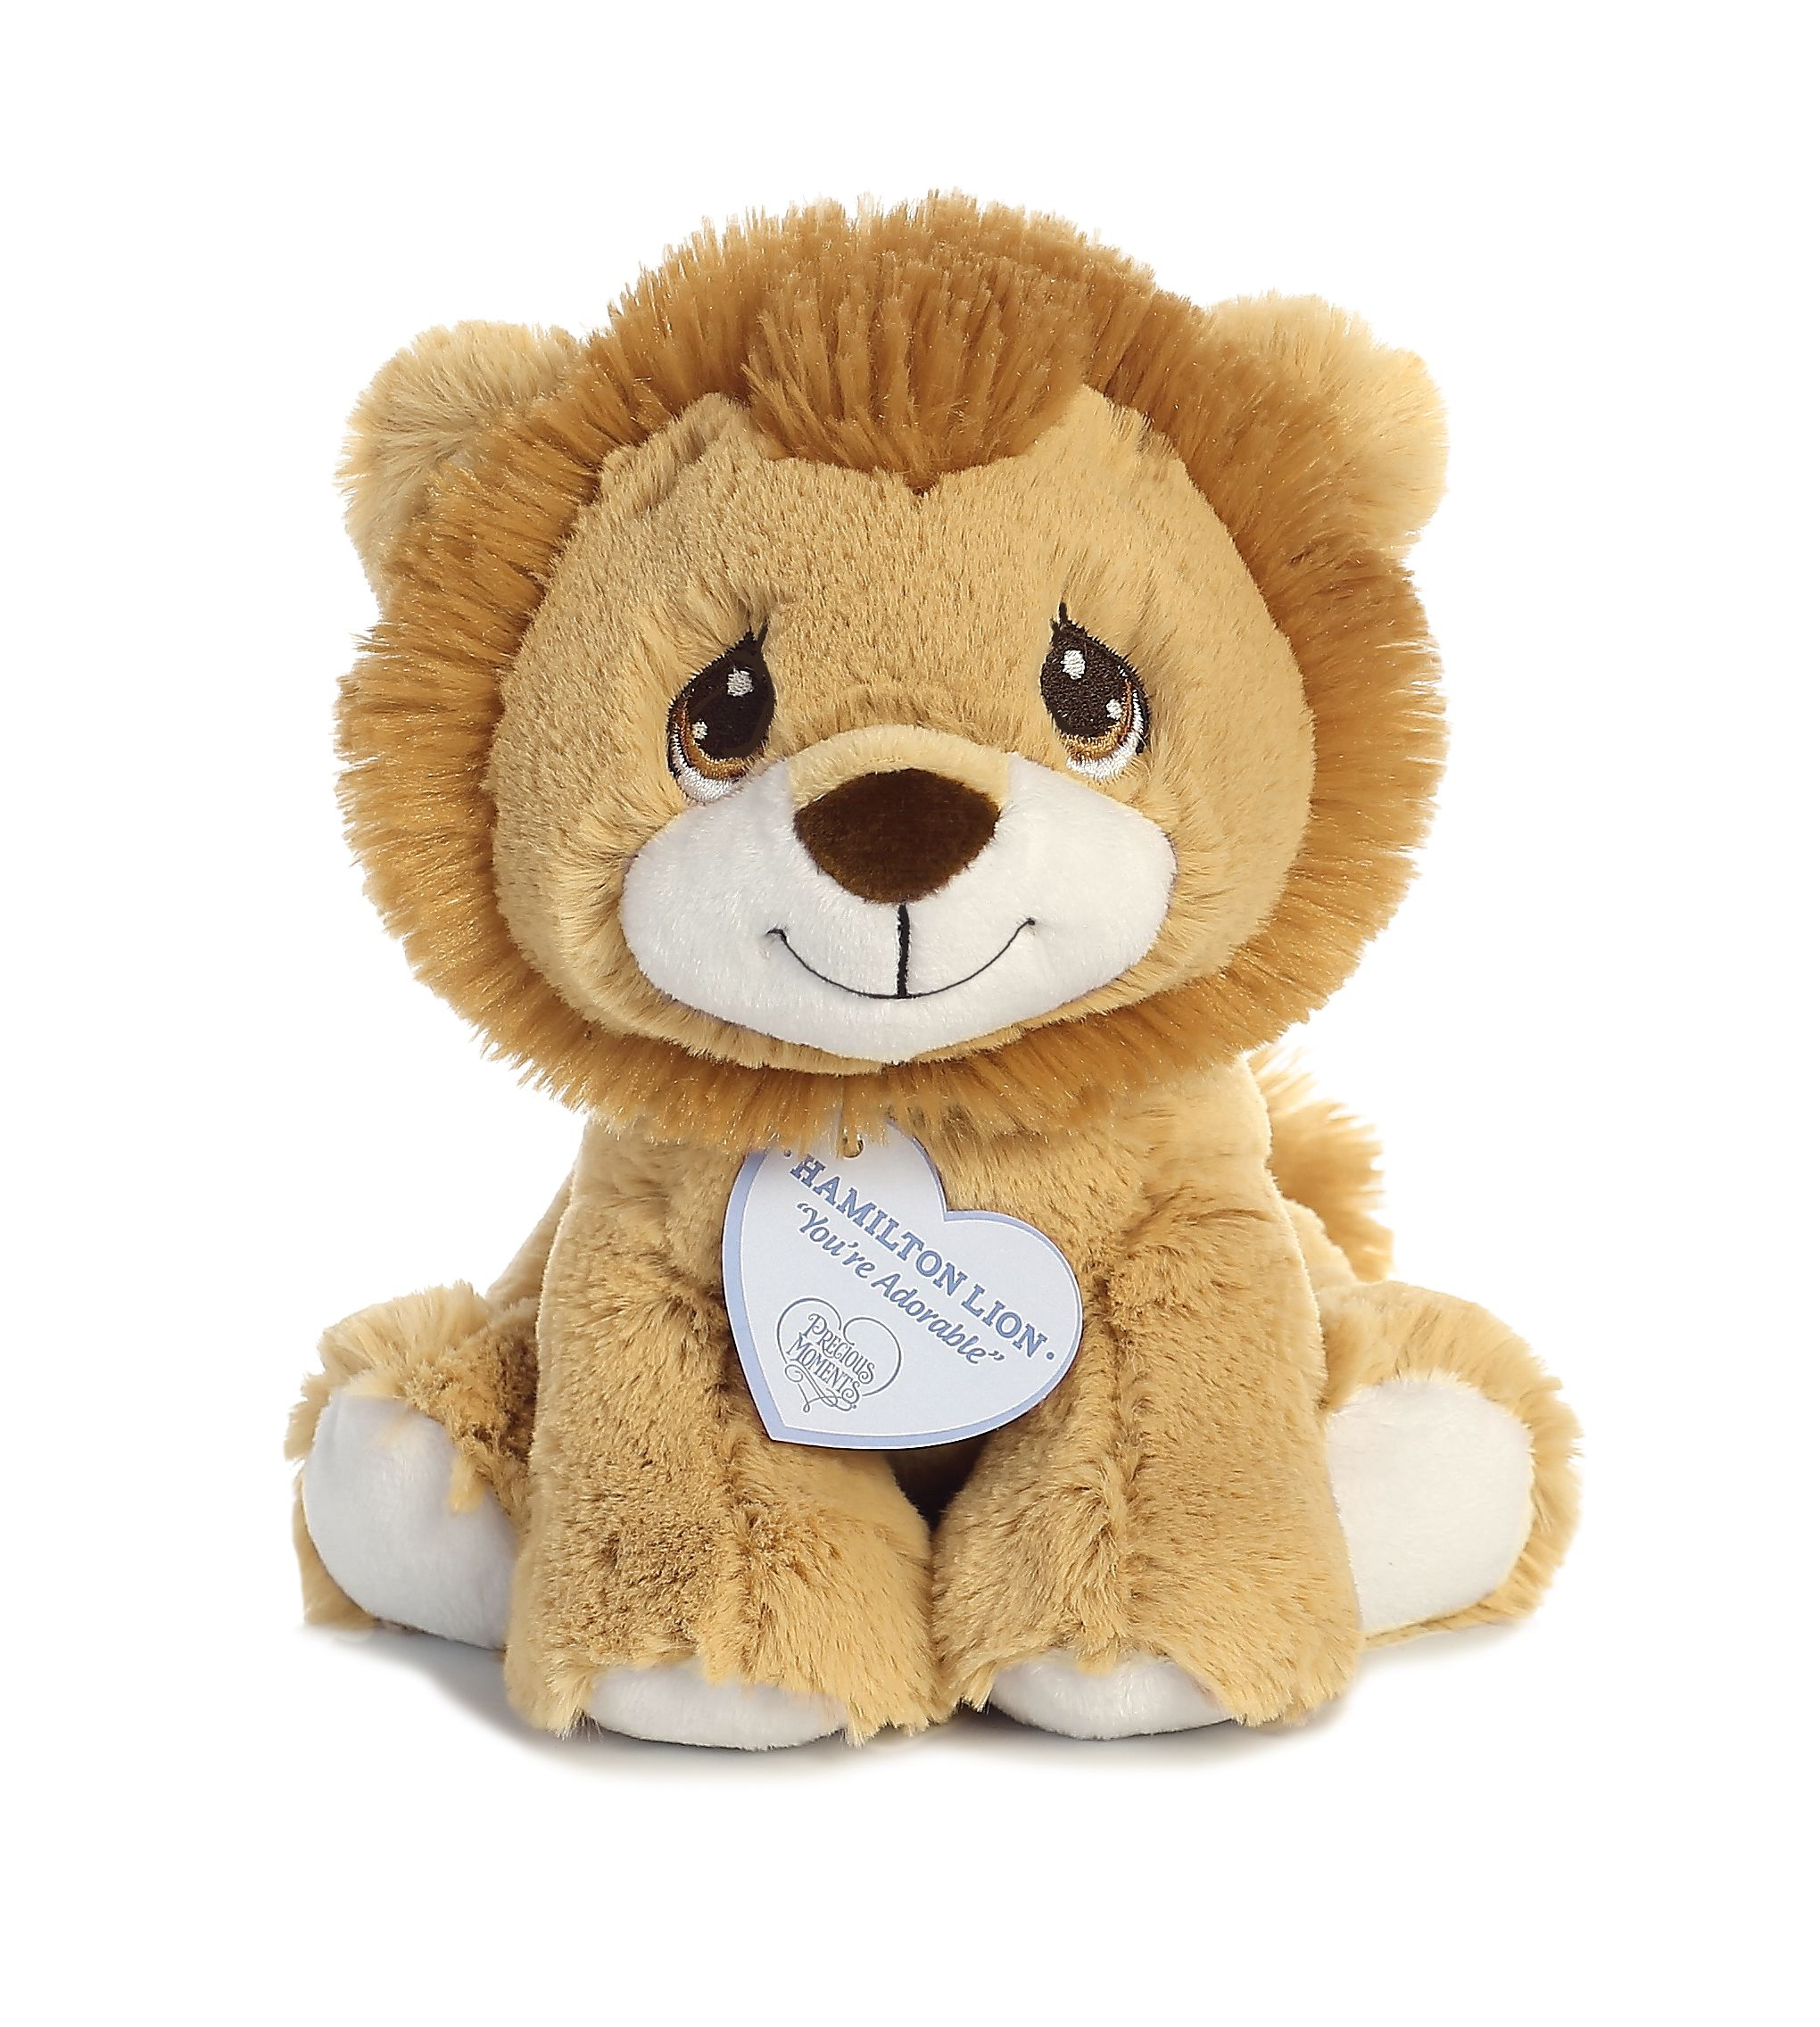 Hamilton Lion 8 inch Baby Stuffed Animal by Precious Moments (15710) by Precious Moments